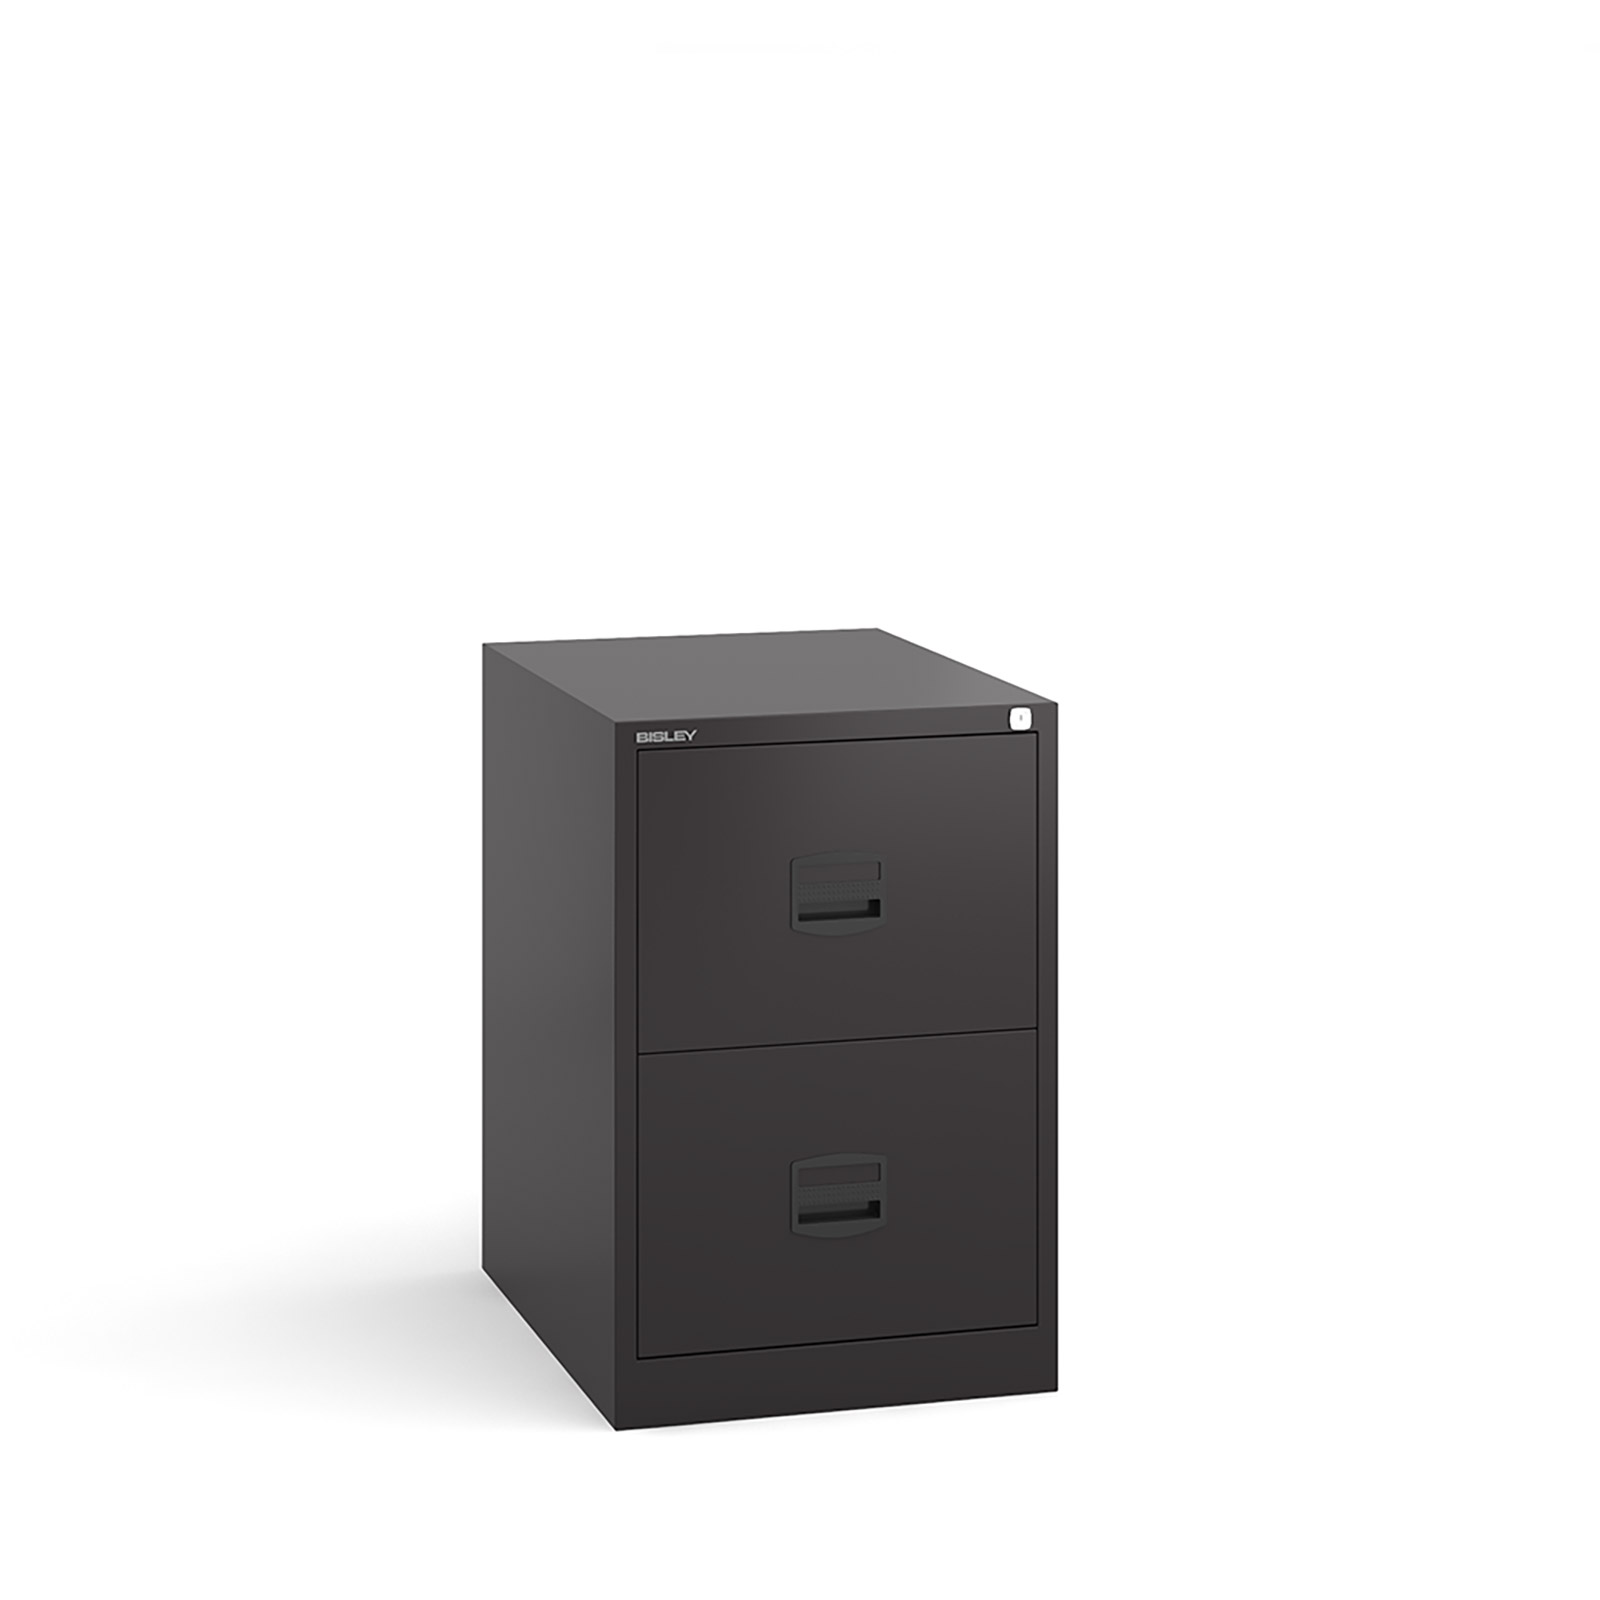 2 drawer contract filing cabinet in Black